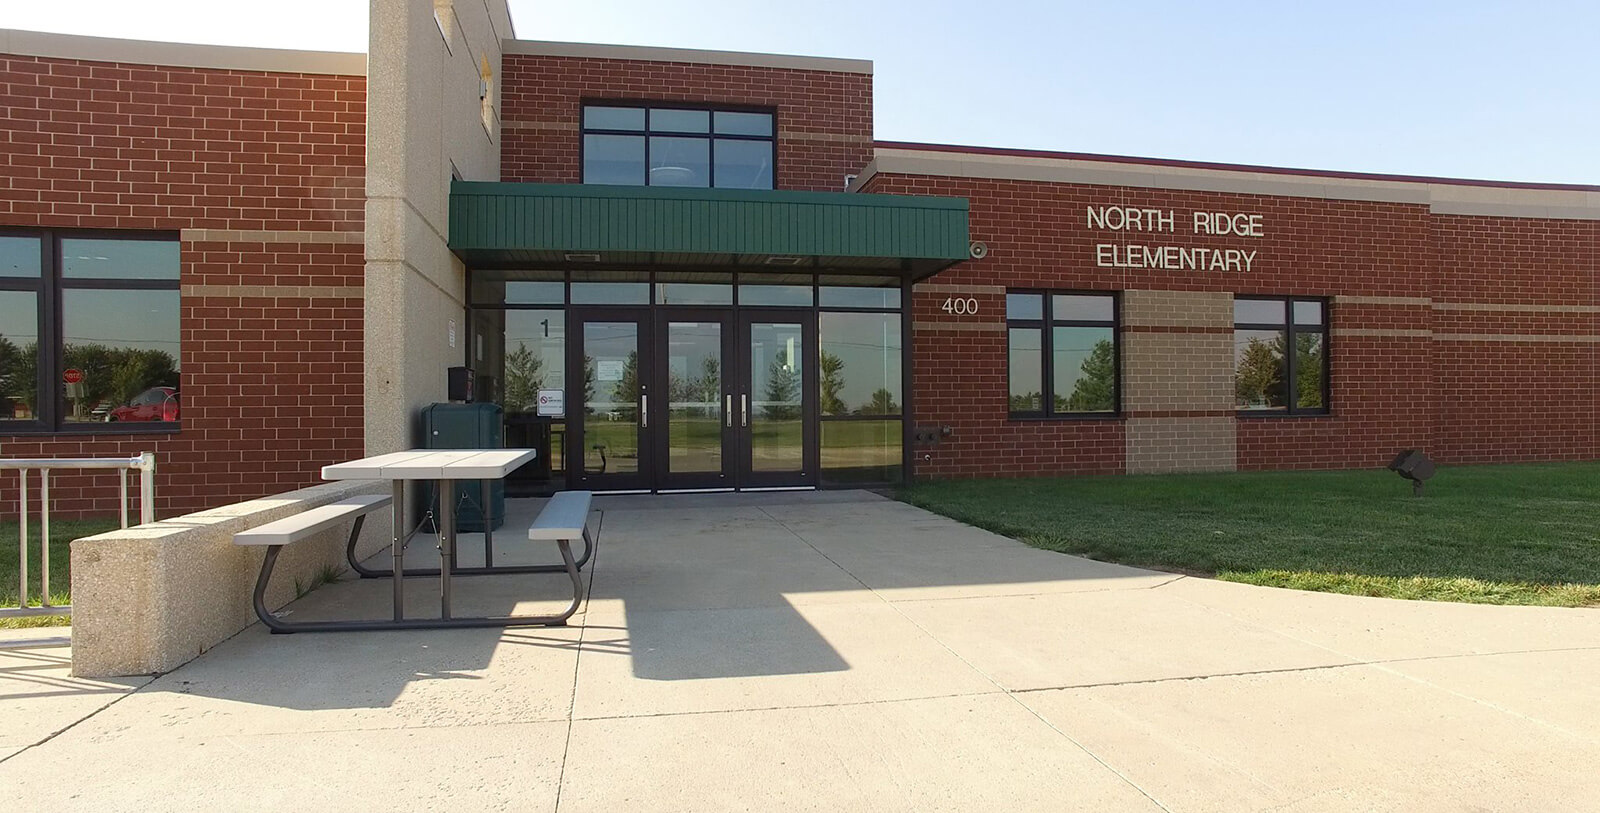 north ridge elementary building